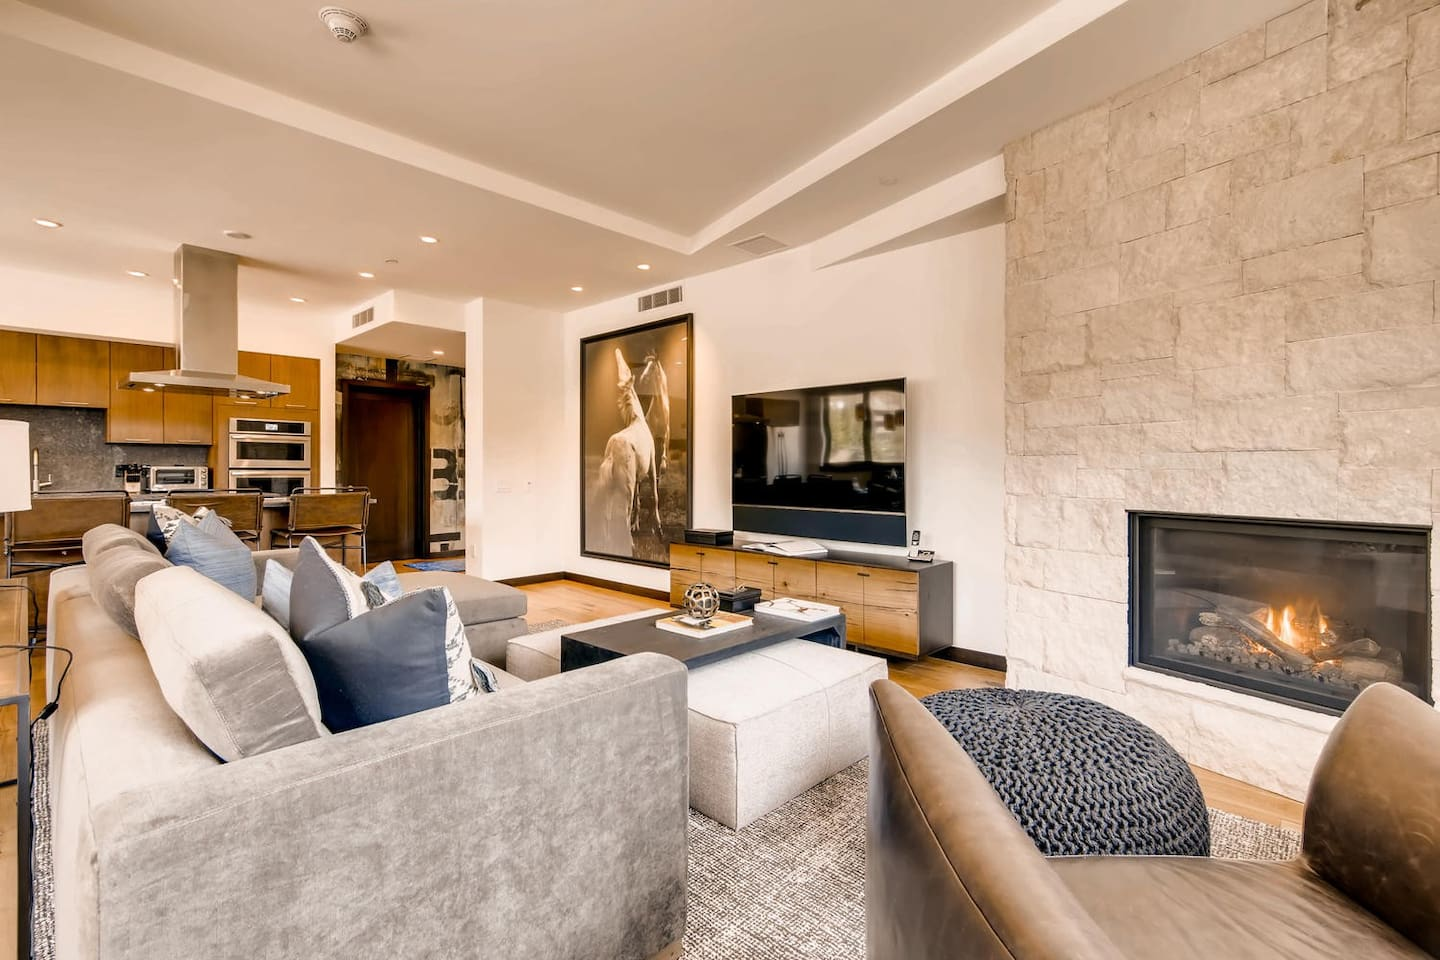 Living Room - Gas Fire Place - TV